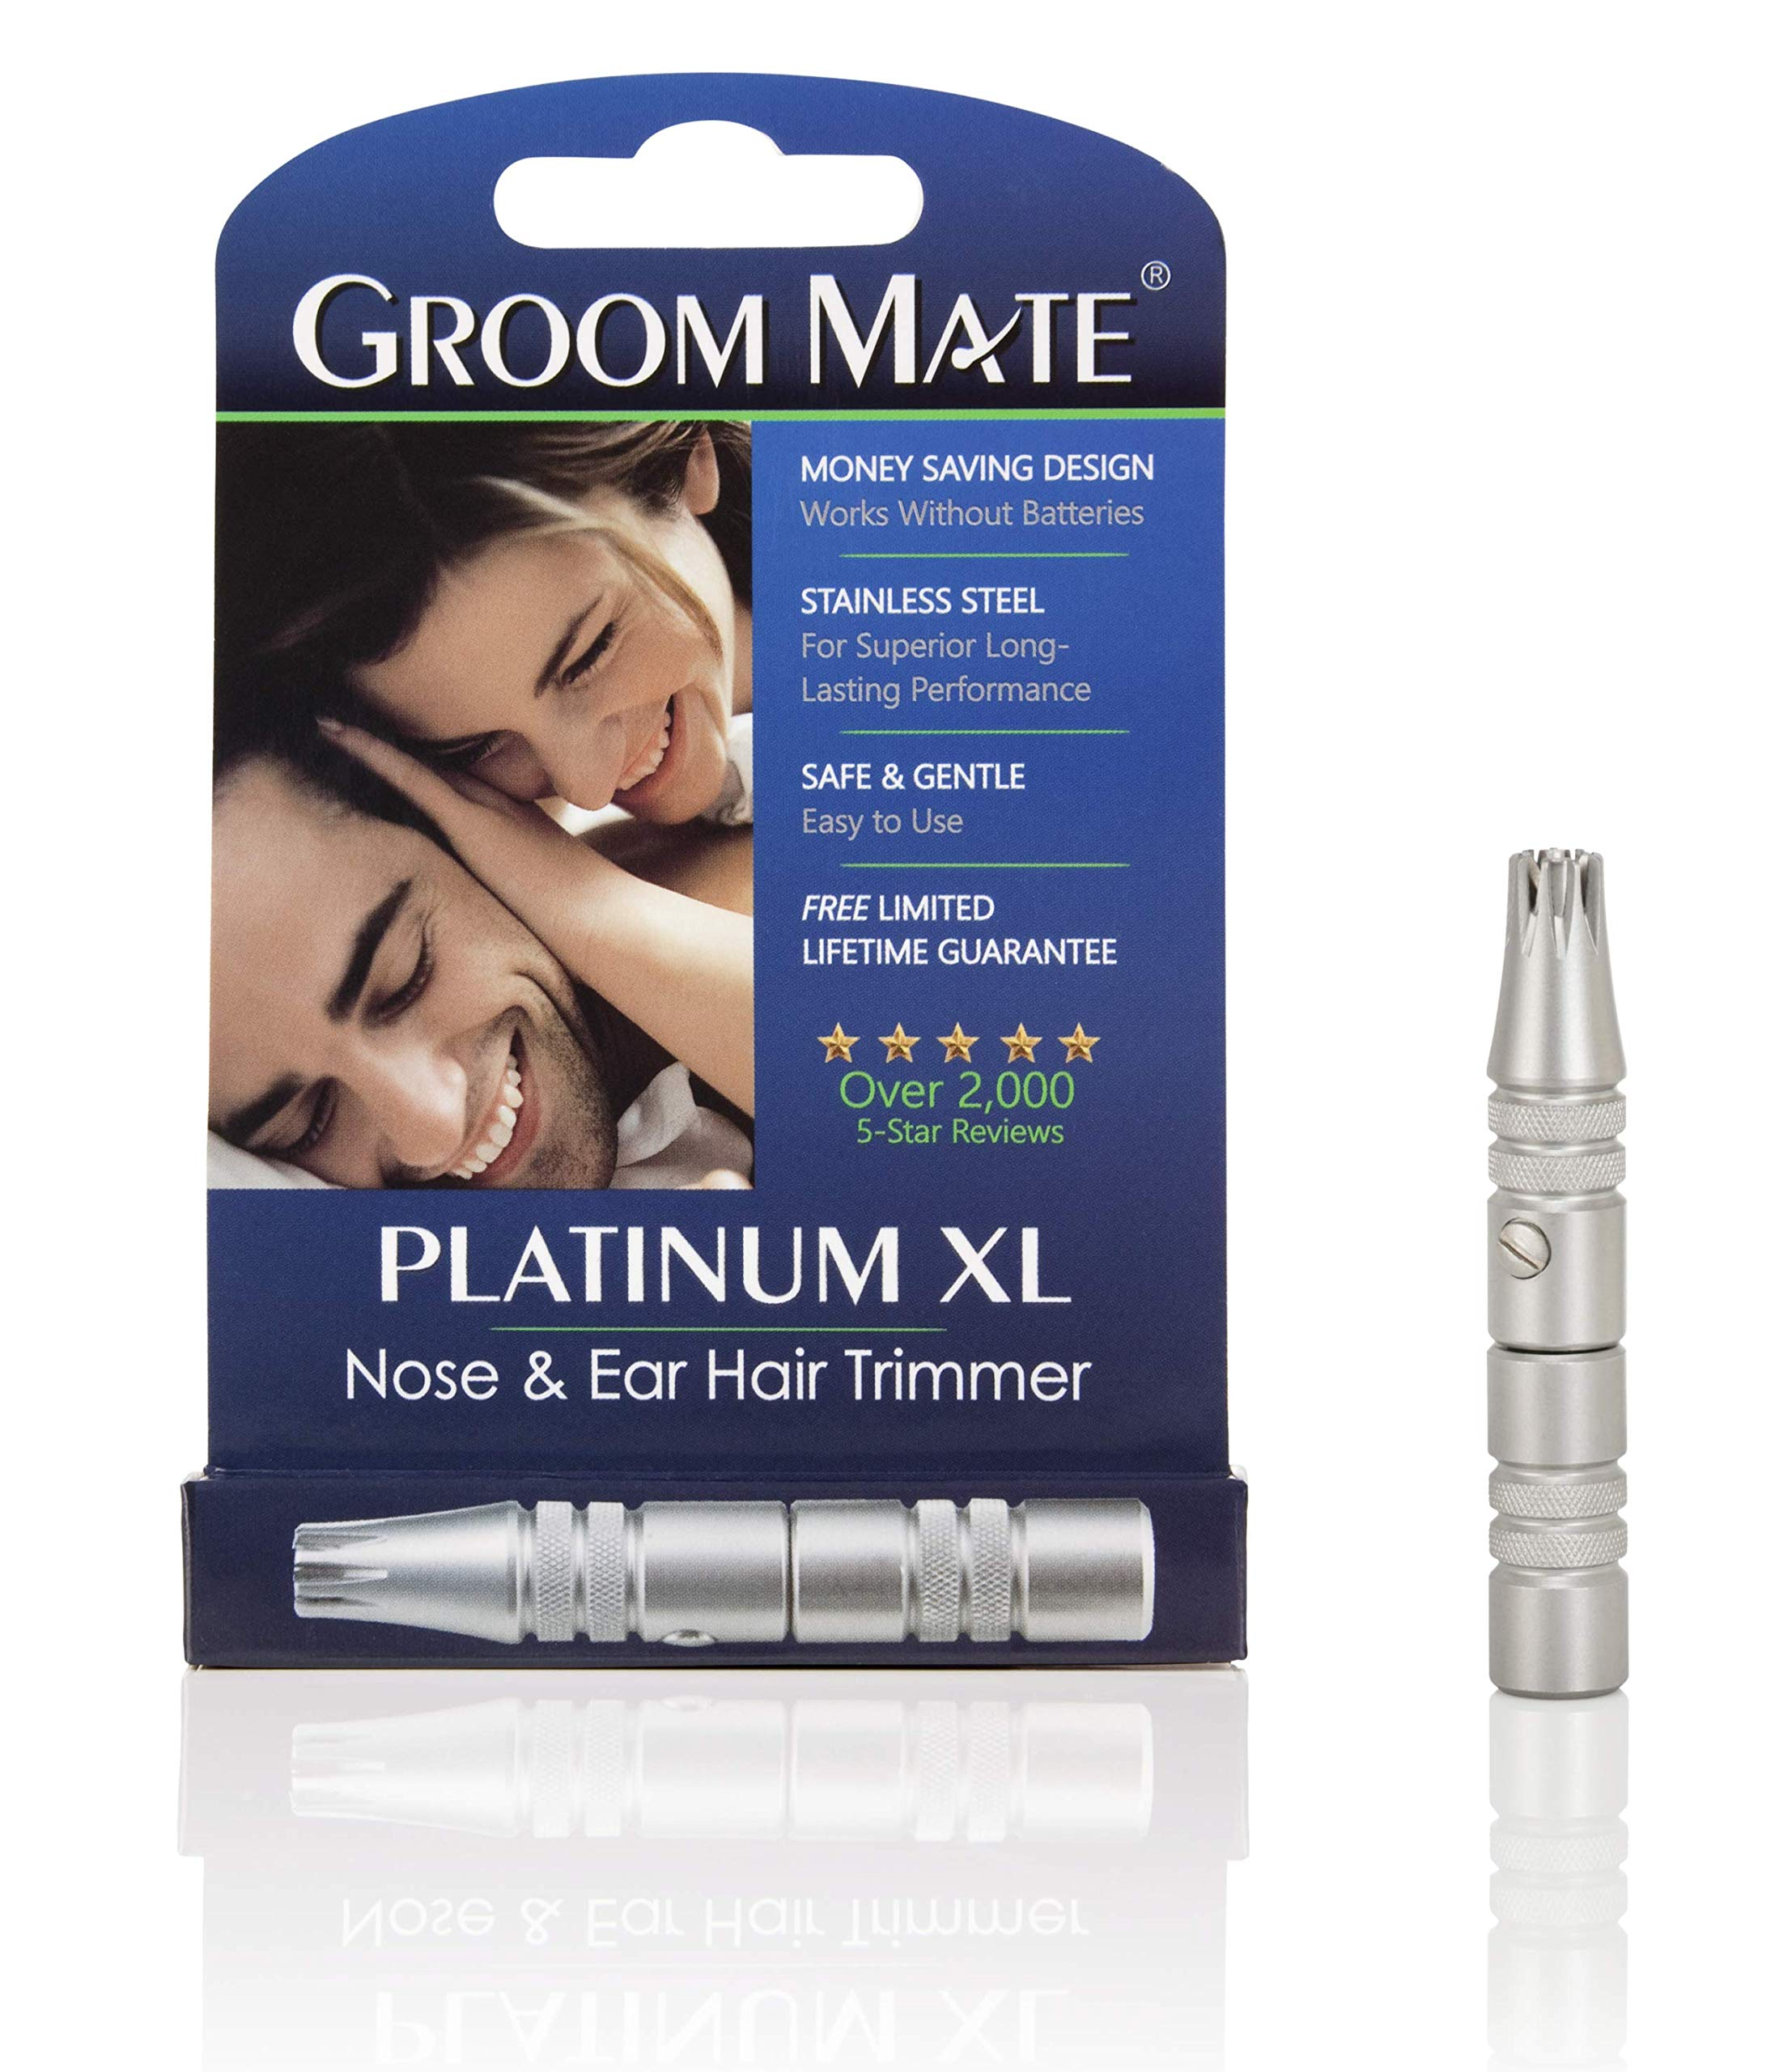 Groom Mate Platinum Xl Nose and Ear Hair Trimmer product image